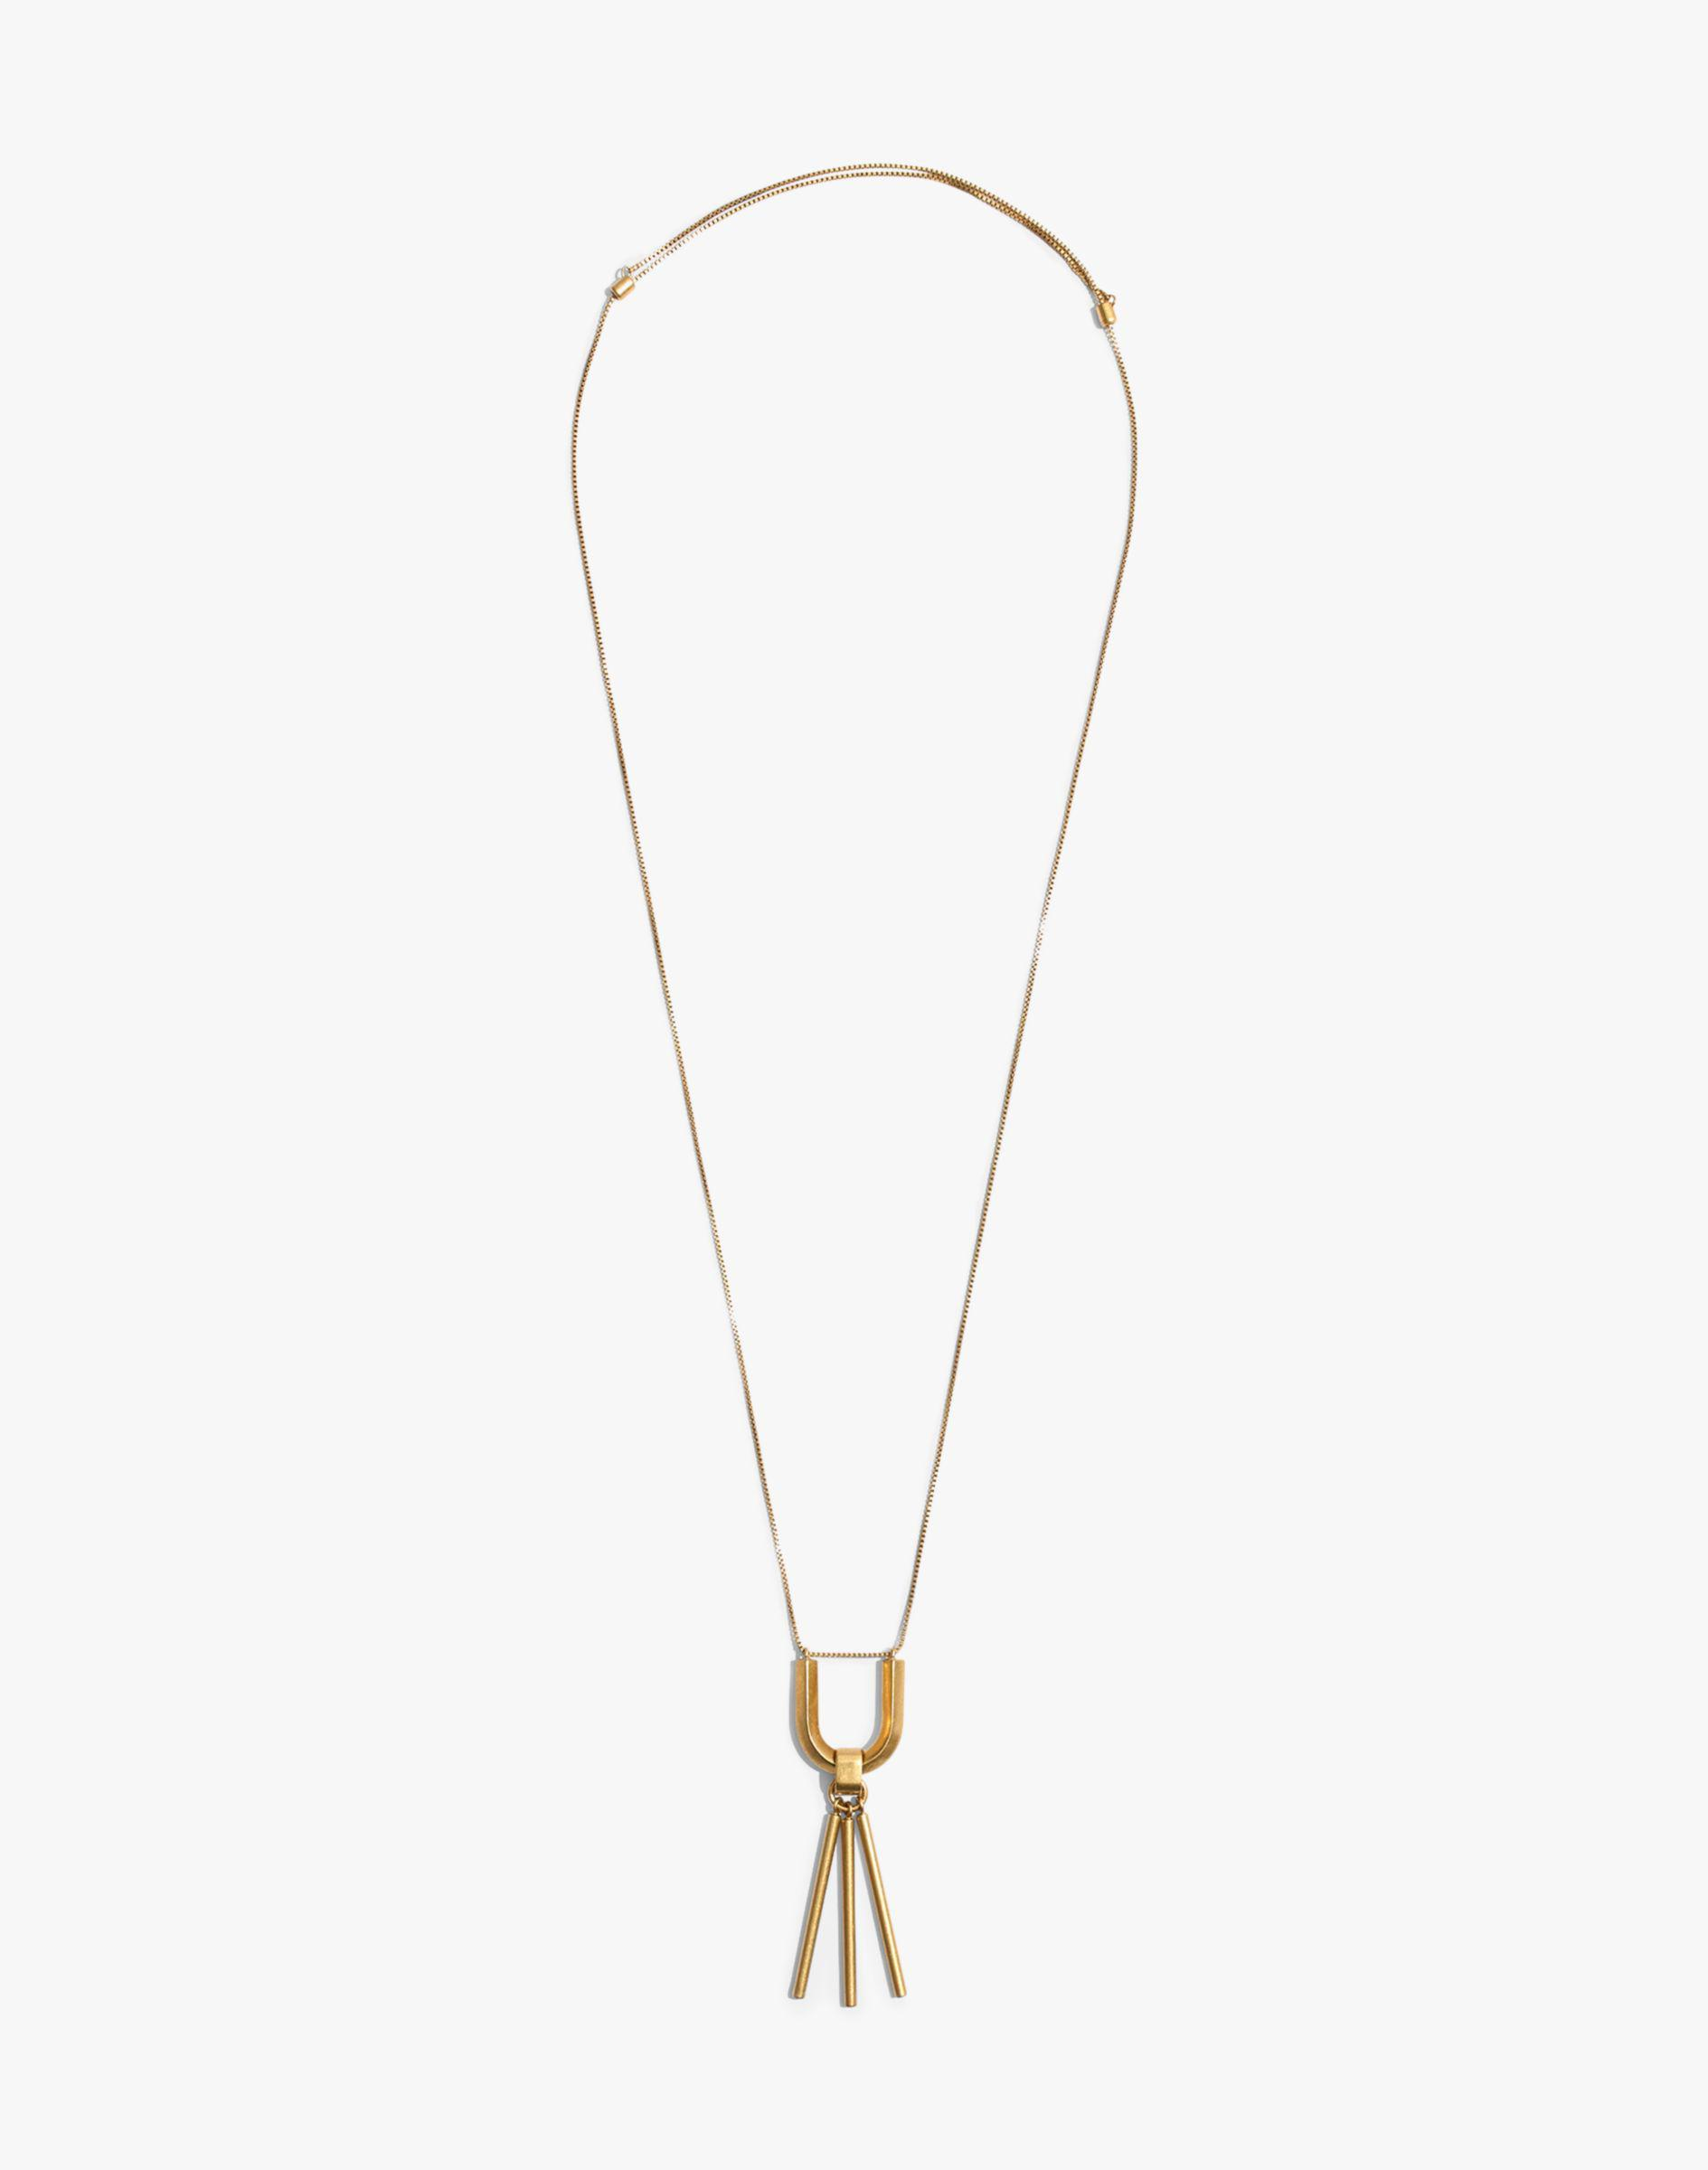 Madewell Curvelink Pendant Necklace in Gold (Metallic)